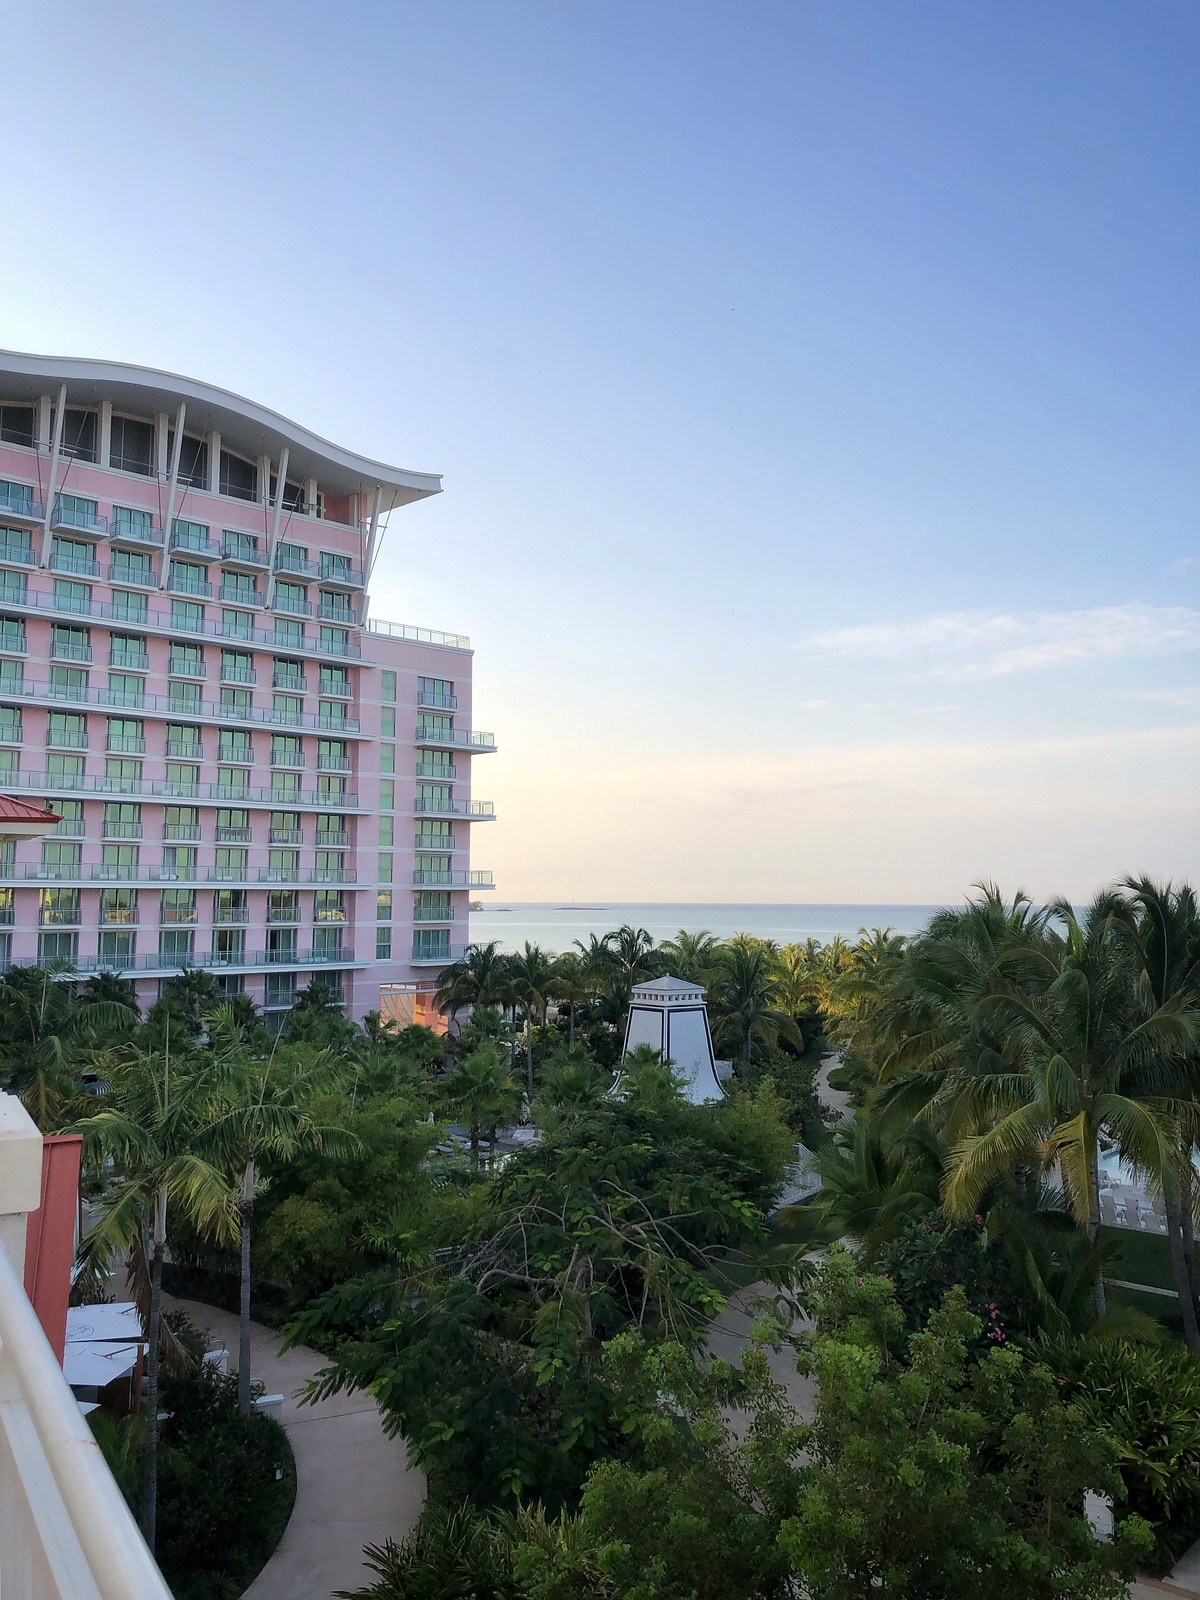 25 Photos That Will Make You Want to Visit Baha Mar | Baha Mar Resort Review | Photo Diary Baha Mar Nassau Bahamas | Bahamas Travel Diary | Baha Mar in the Bahamas | Grand Hyatt Baha Mar Bahamas Review | The Best Resort in the Bahamas | Bahamas Travel Guide